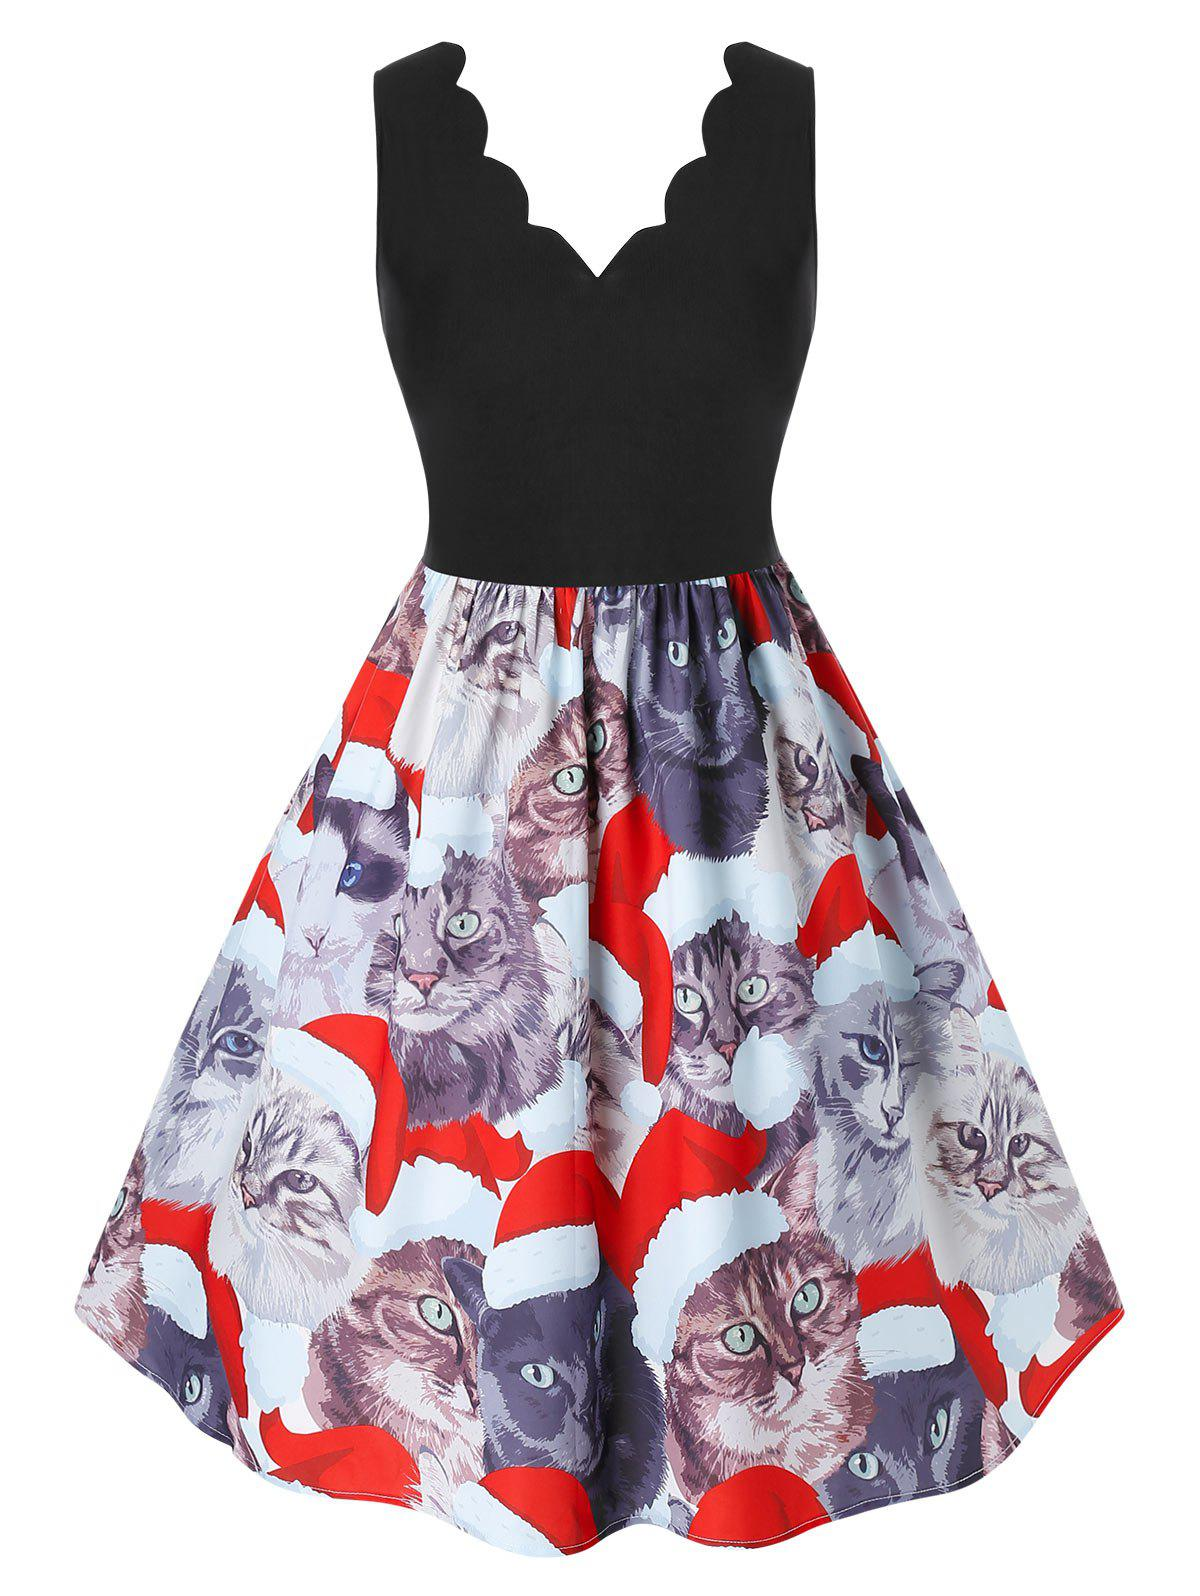 Plus Size Scalloped Cat Print Christmas Dress - multicolor 4X